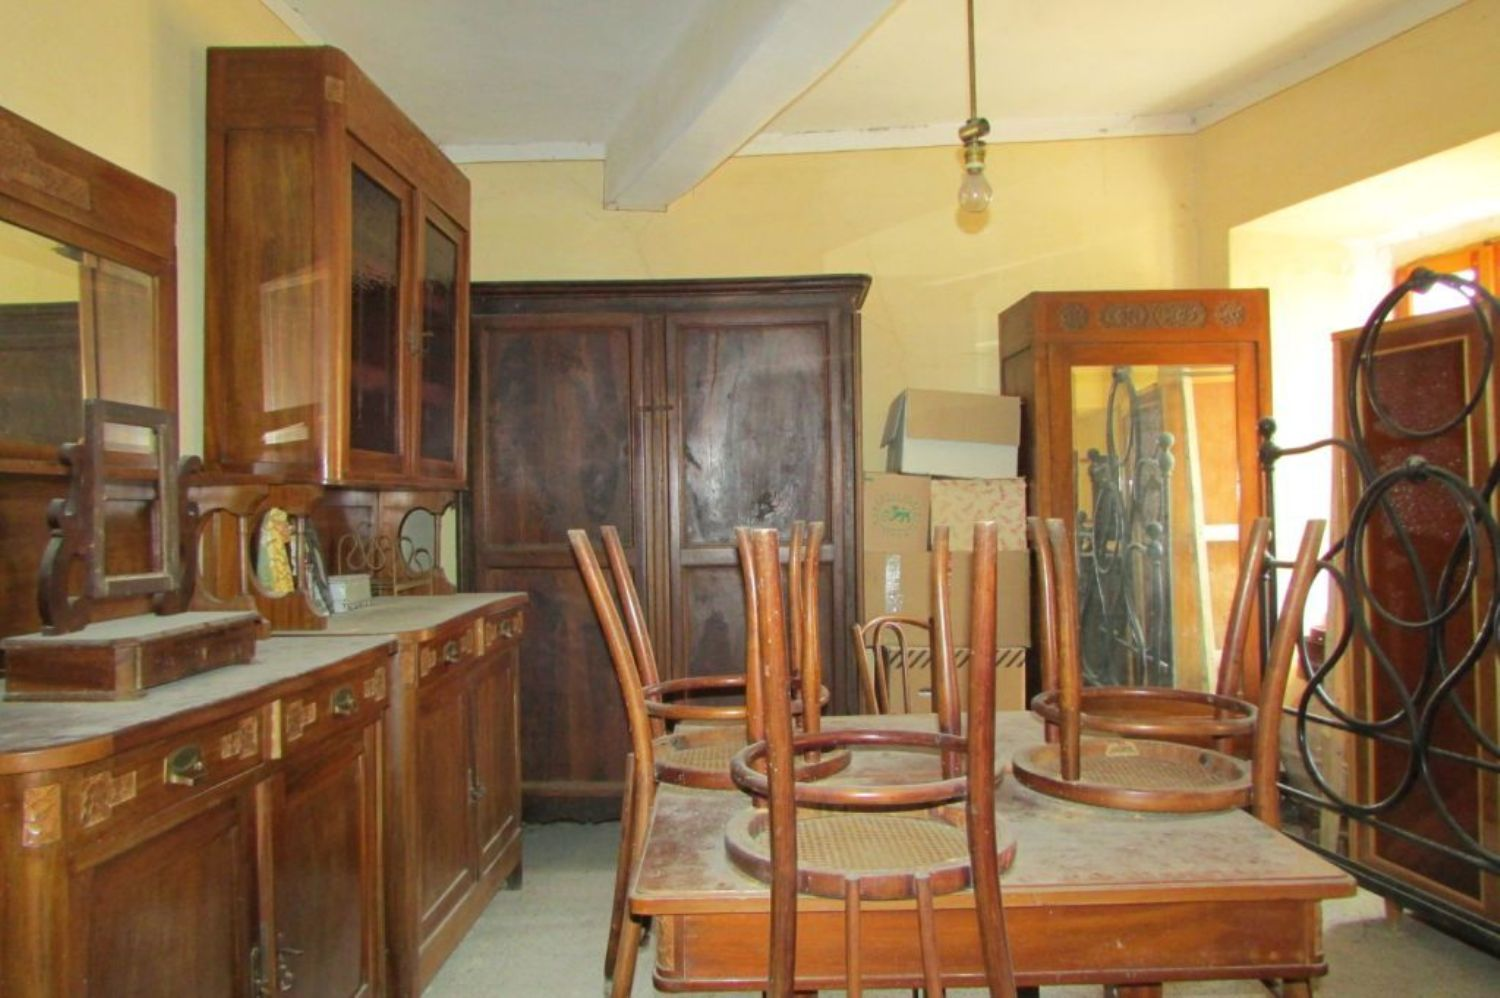 property under 50k in Italy, apartment for sale in Italy, buy property overseas